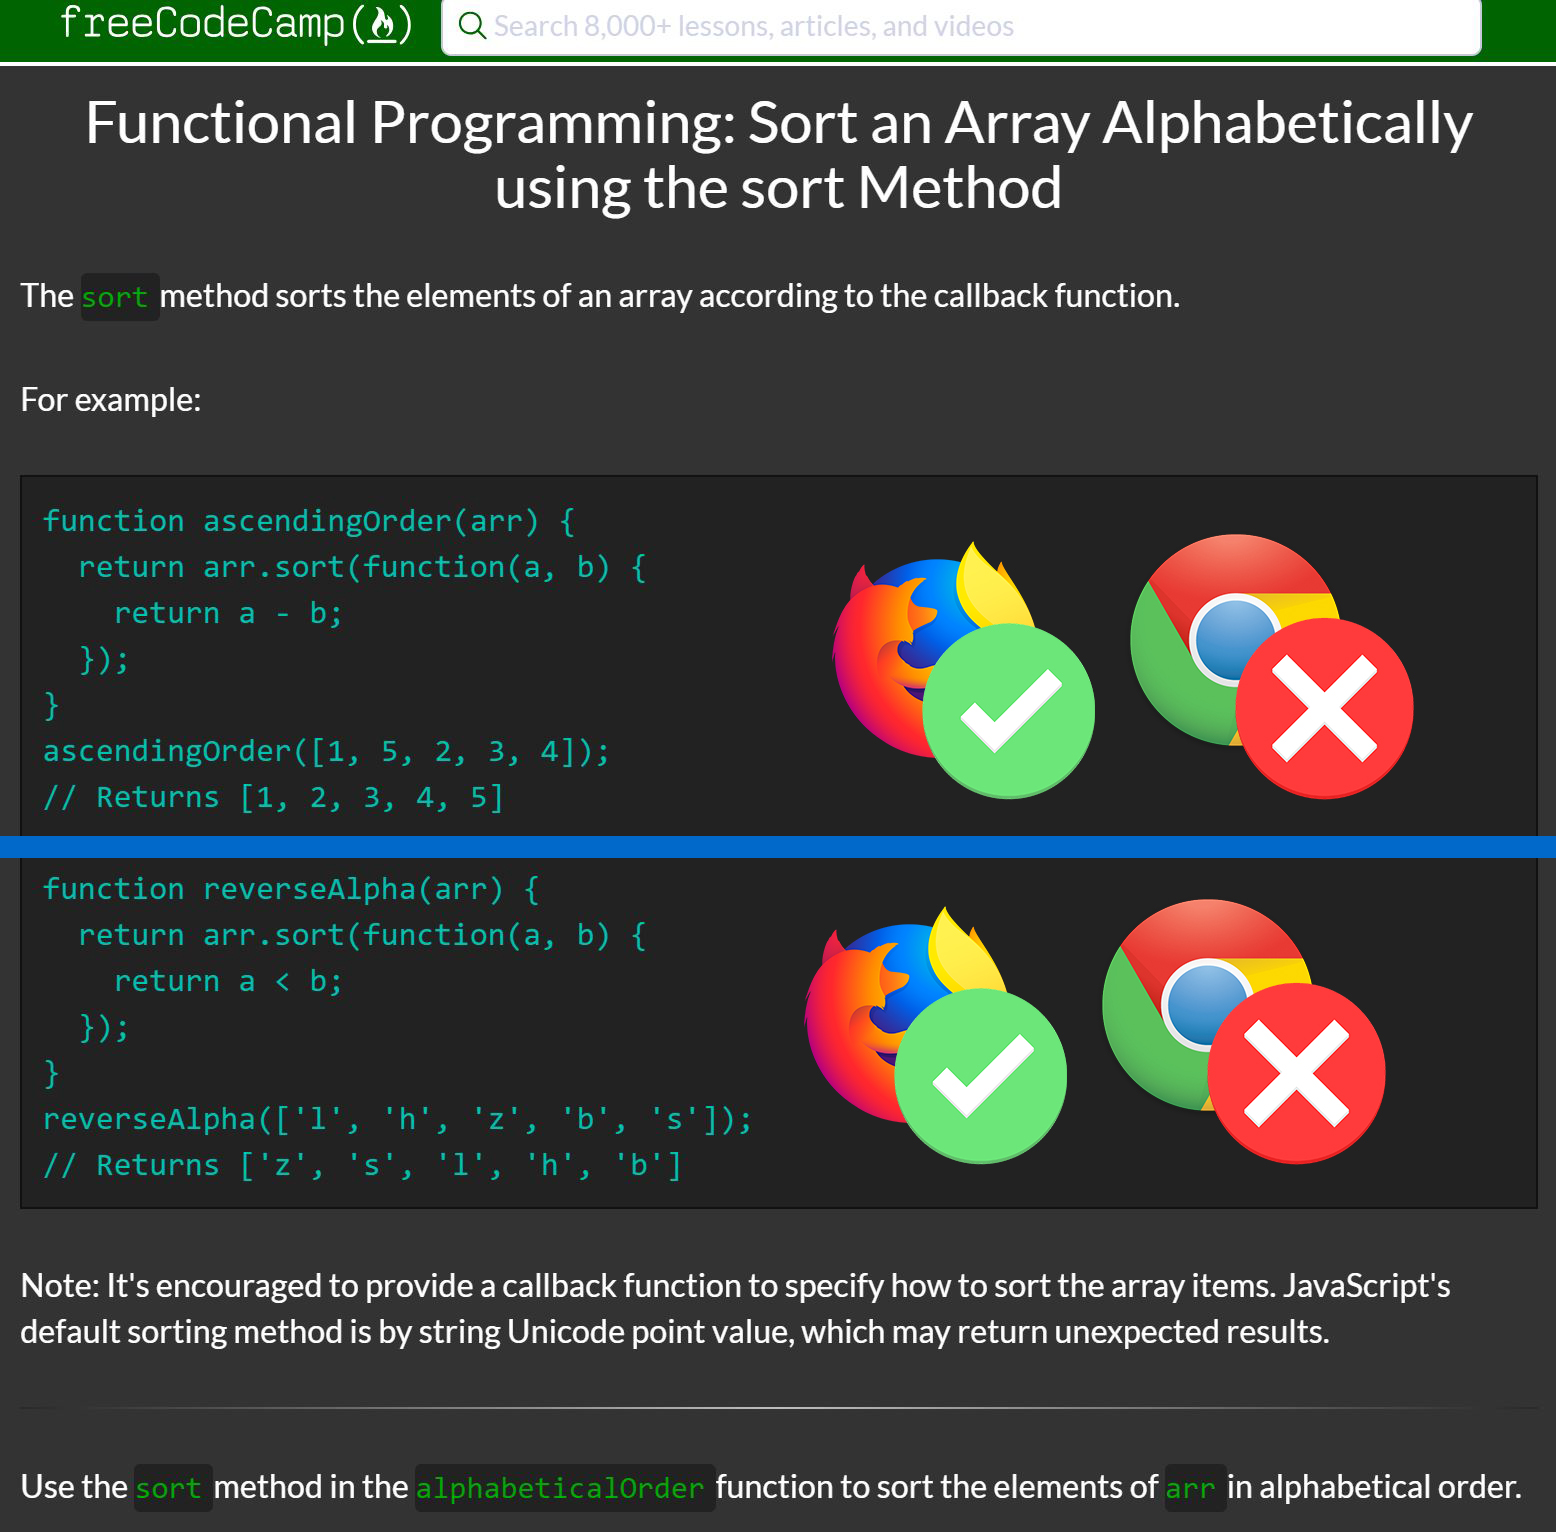 Update text in Sort an Array Alphabetically using the sort